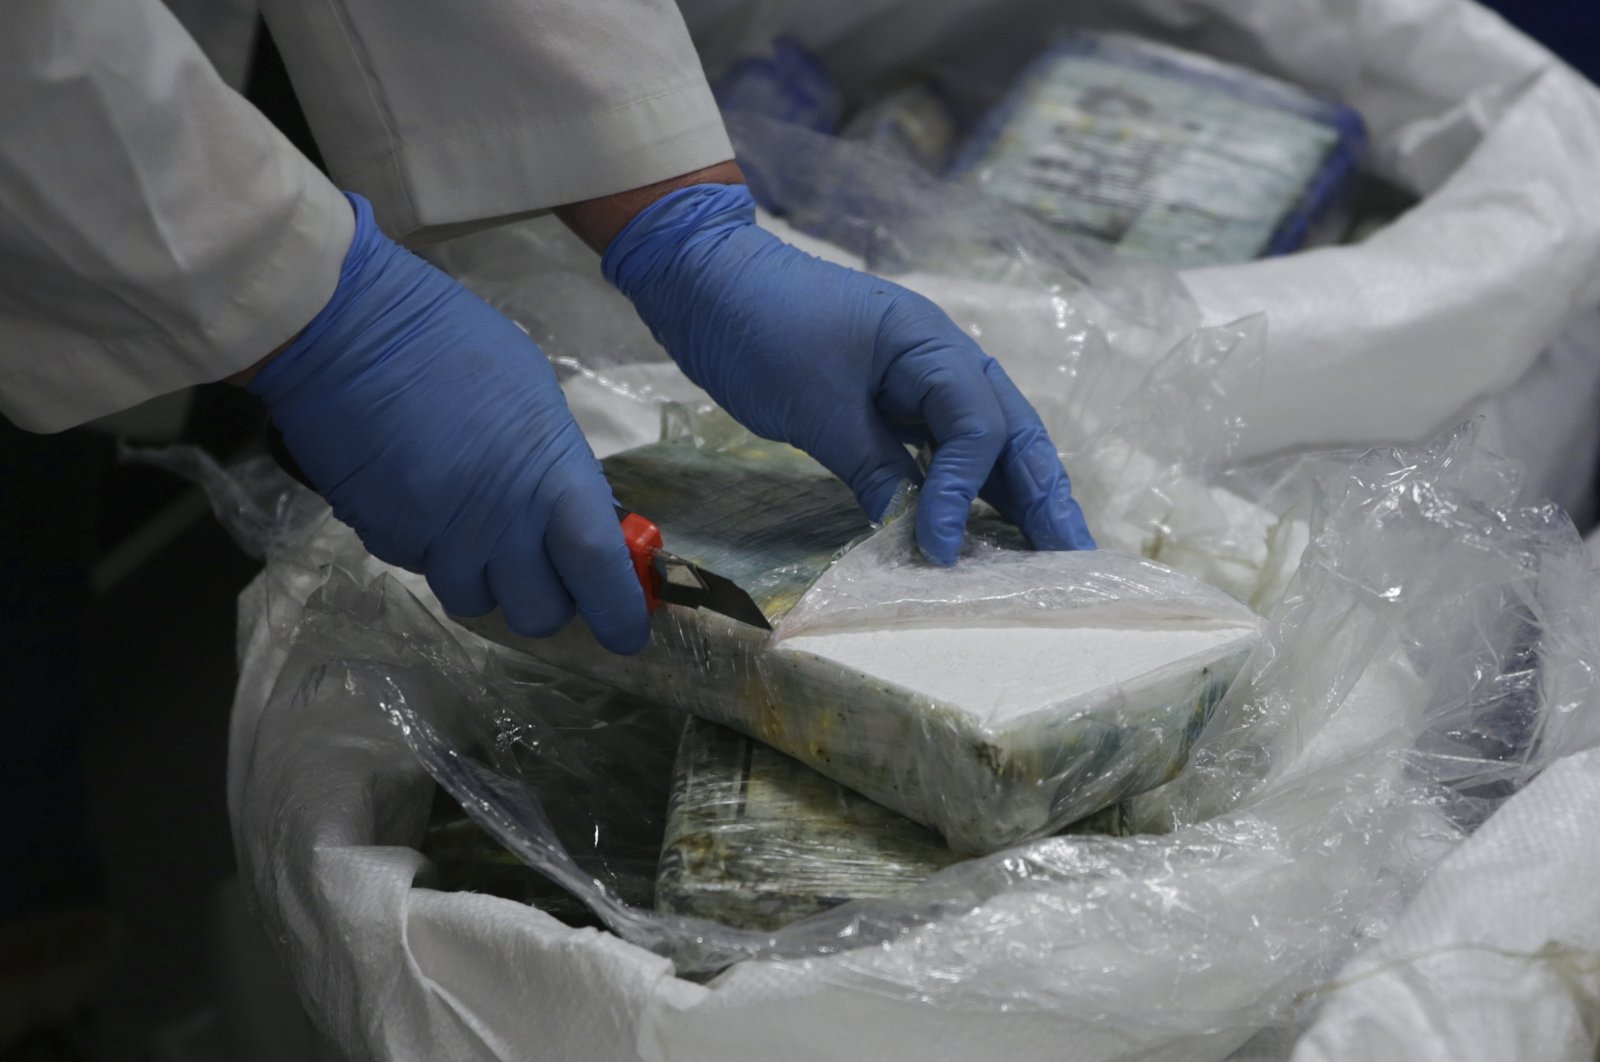 A member of the police opens a packet with cocaine as a large supply recently seized is displayed to the press at the Portuguese police headquarters in Lisbon, Jan. 8, 2020. (AP Photo)